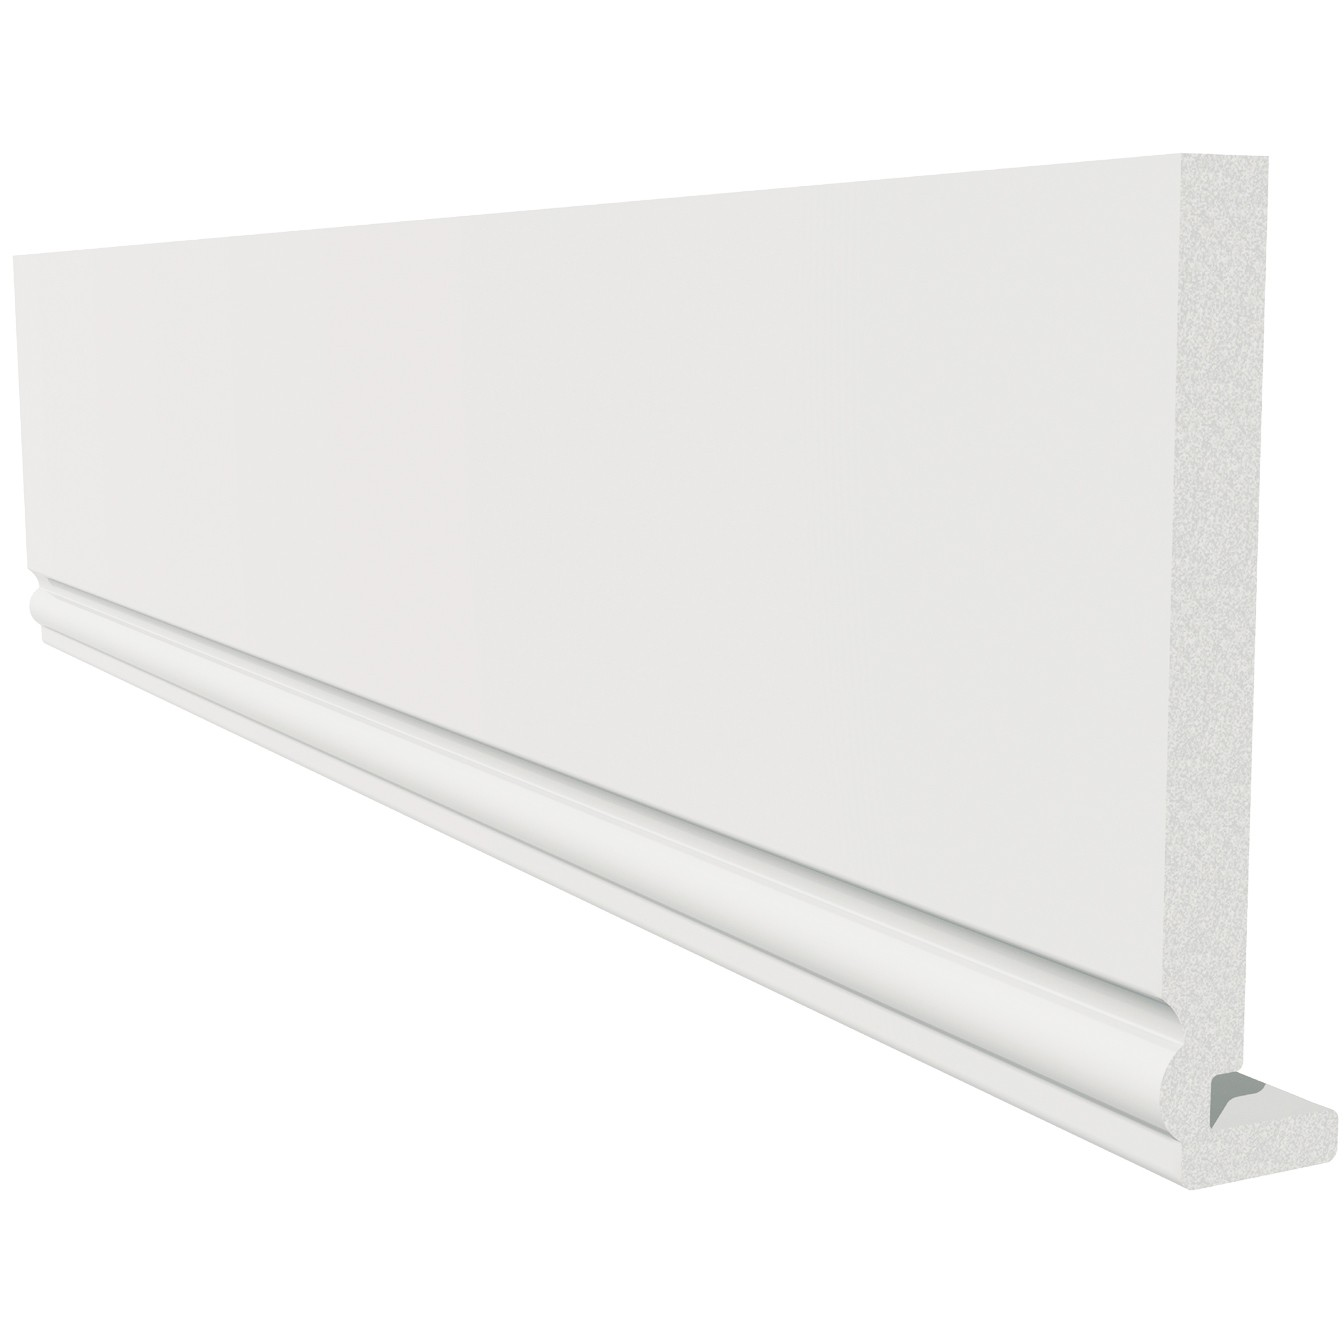 Freefoam Magnum Ogee 18mm Fascia Board - White, 405mm, 5 metre